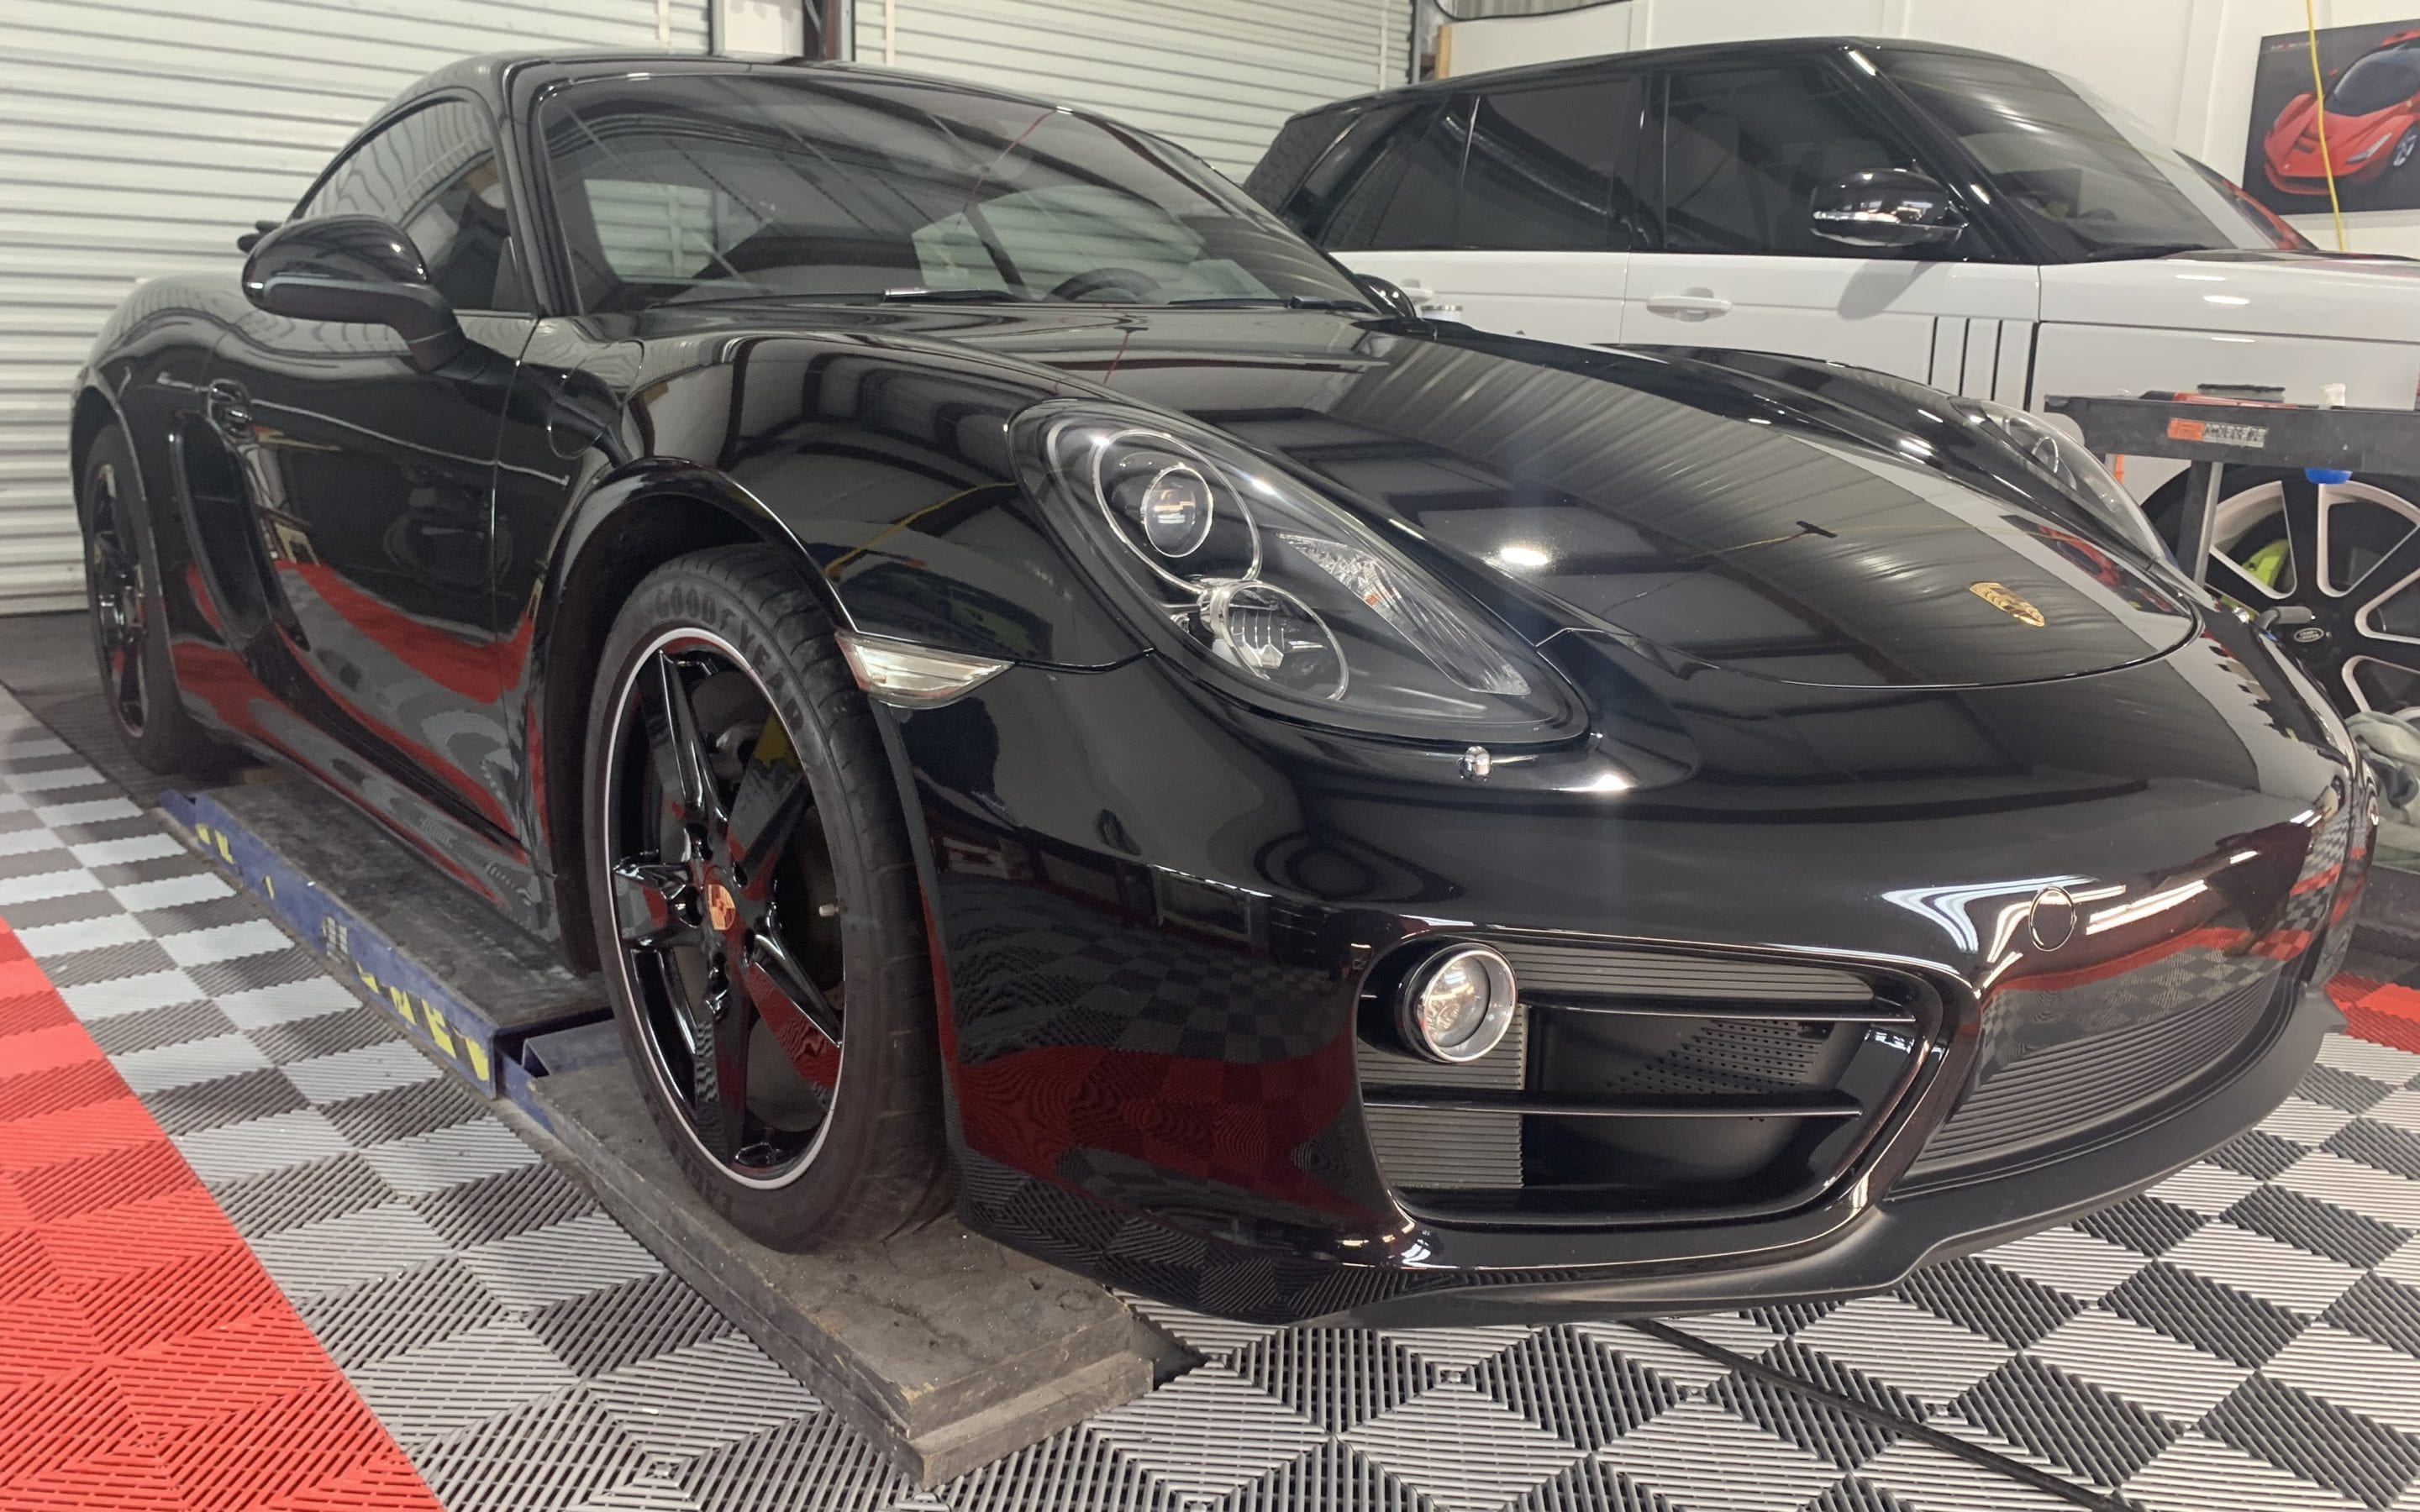 Paint Correction and Ceramic Coating of a 2015 Porsche Cayman